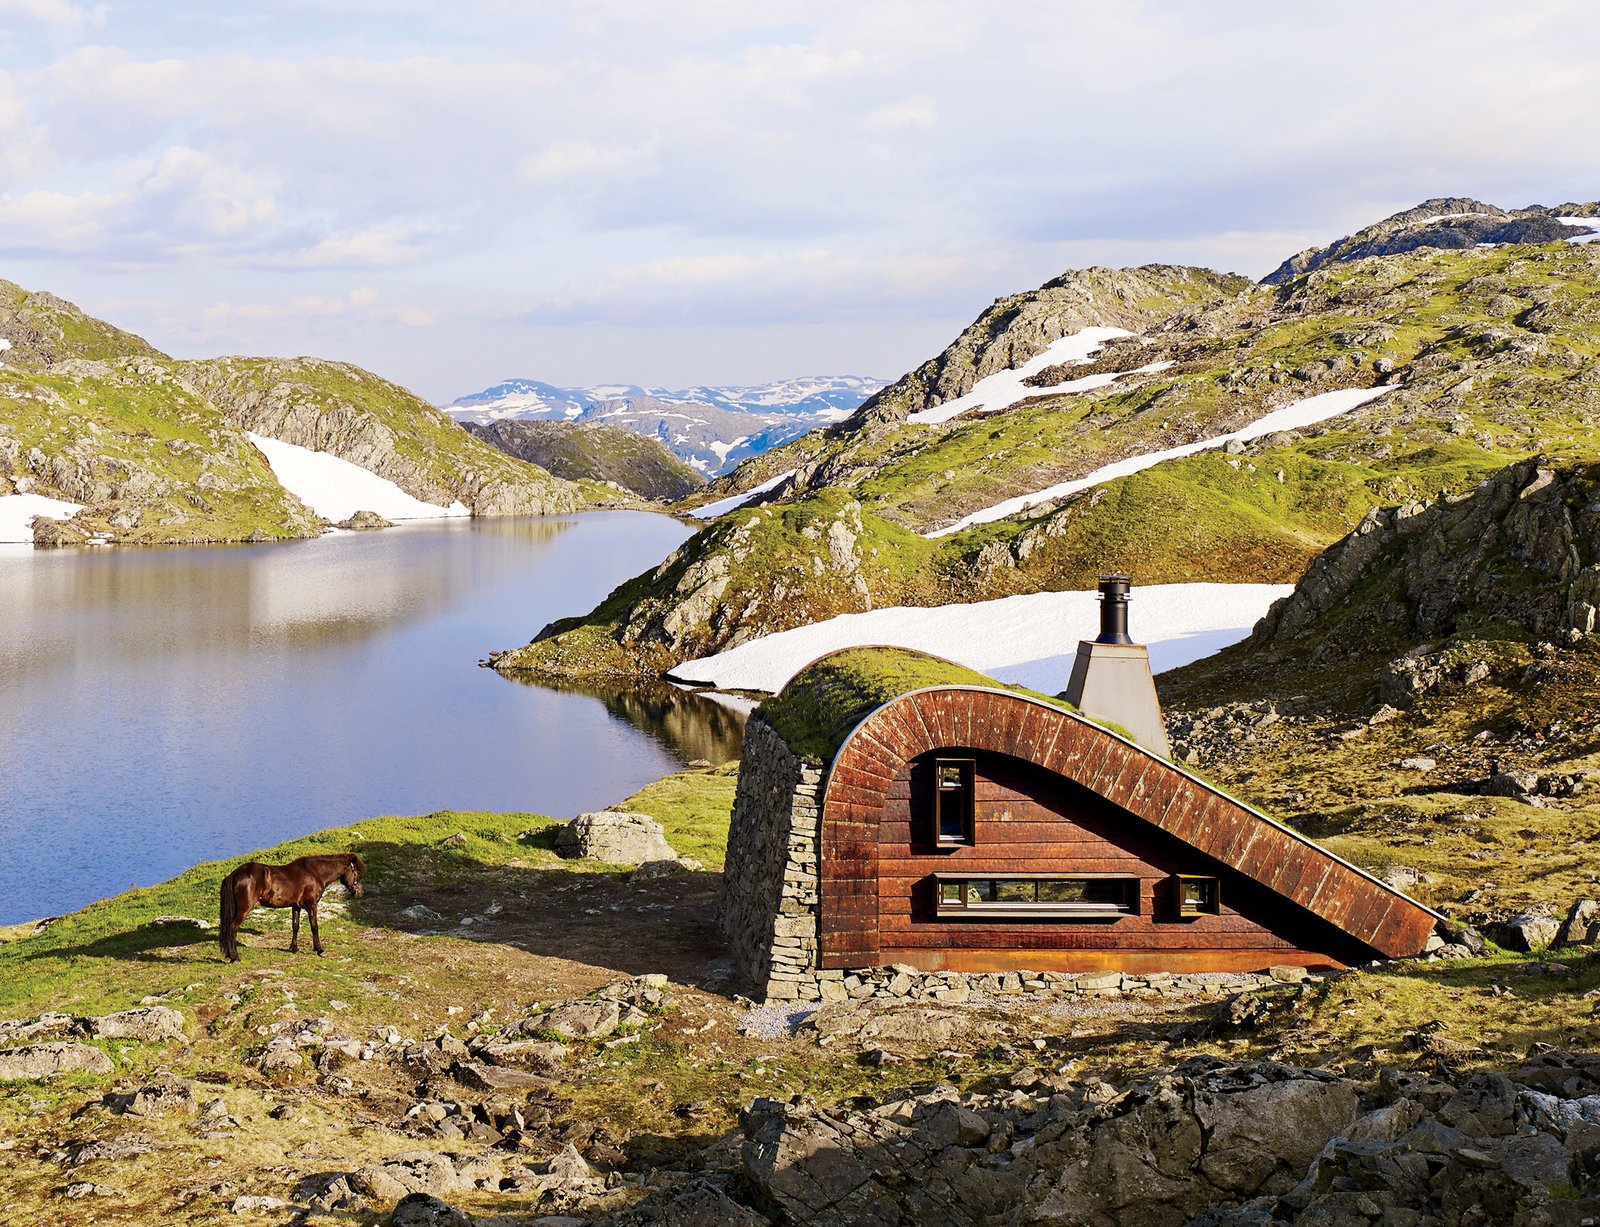 The Bjellandsbu, a 376-square-foot hunting cabin located in western Norway. Designed by Snøhetta, Photo by James Silverman  #cabin #prefab #norway #horse #grassroof #snow Tagged: Exterior and Cabin Building Type.  Modern Winter Retreats by Aileen Kwun from Cabins & Hideouts